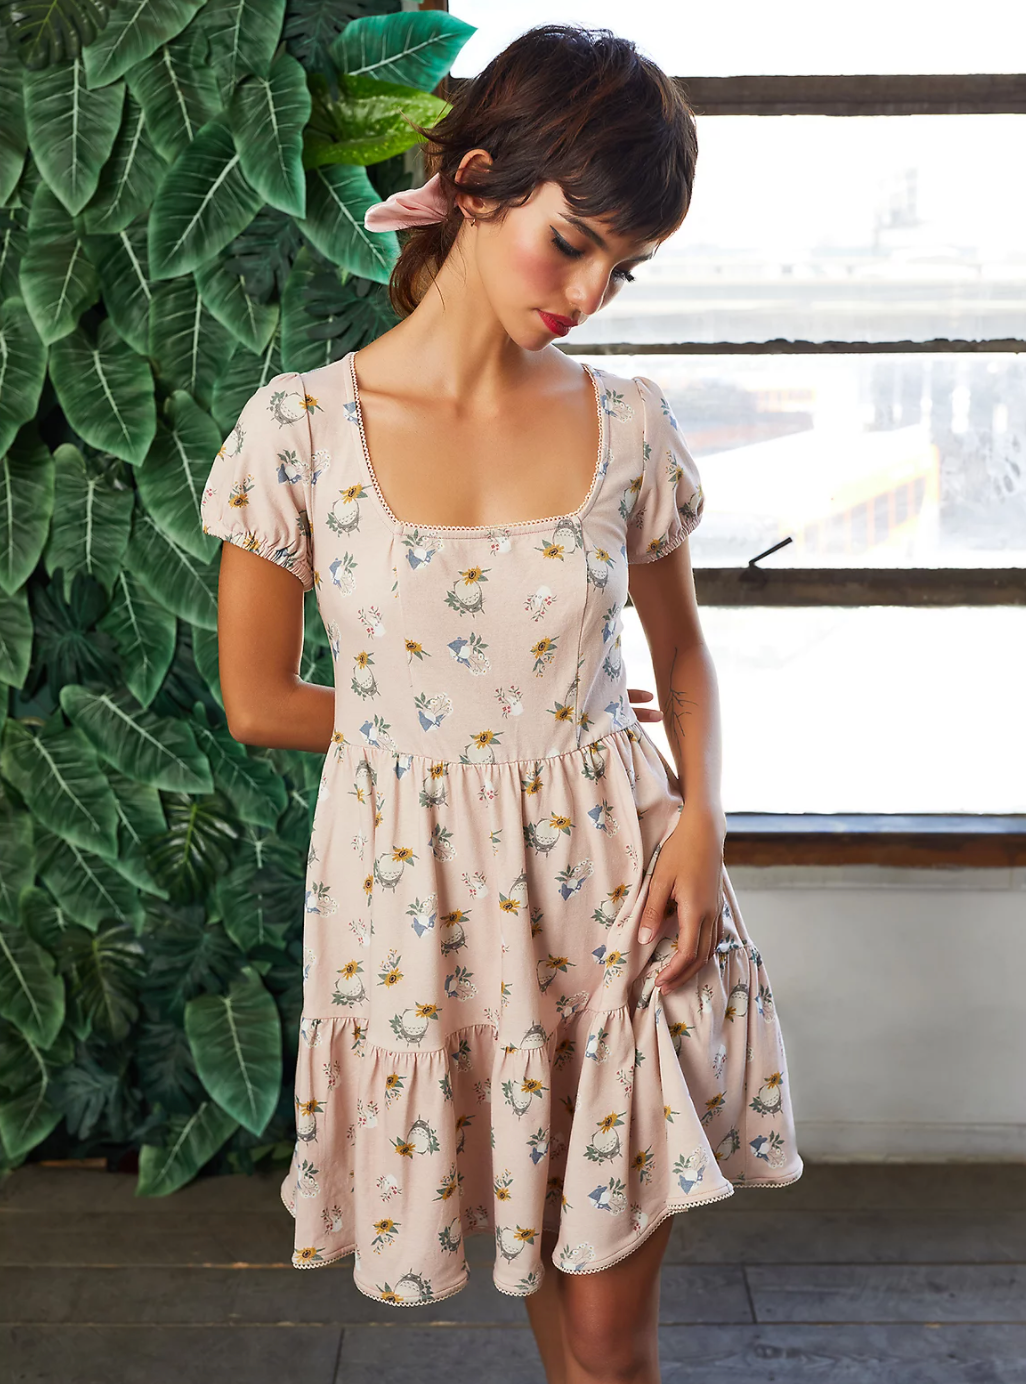 aa model in a pale pink t-shirt dress covered in a totoro design